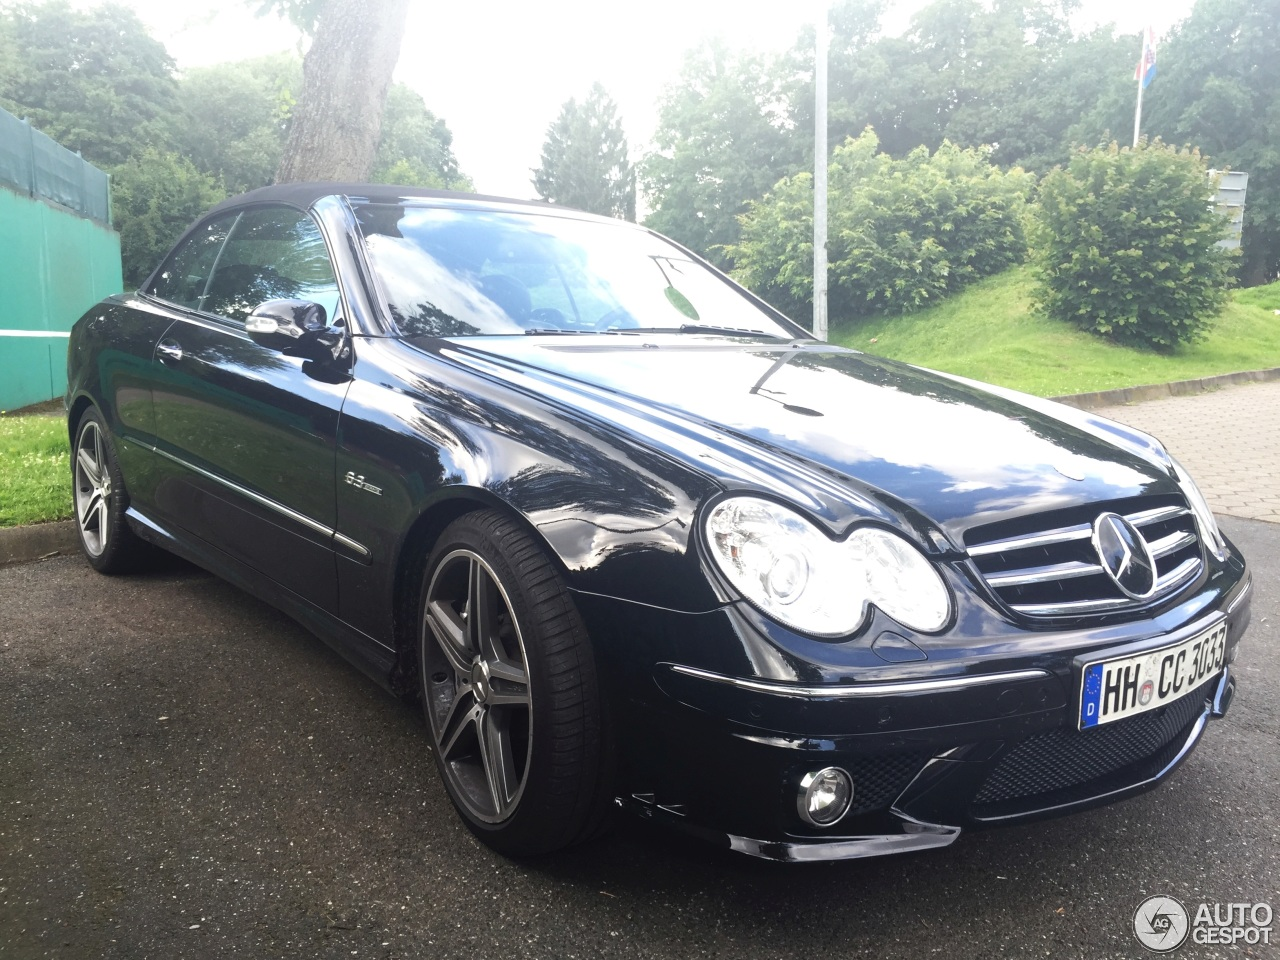 Mercedes Benz Clk 63 Amg Cabriolet 13 July 2016 Autogespot